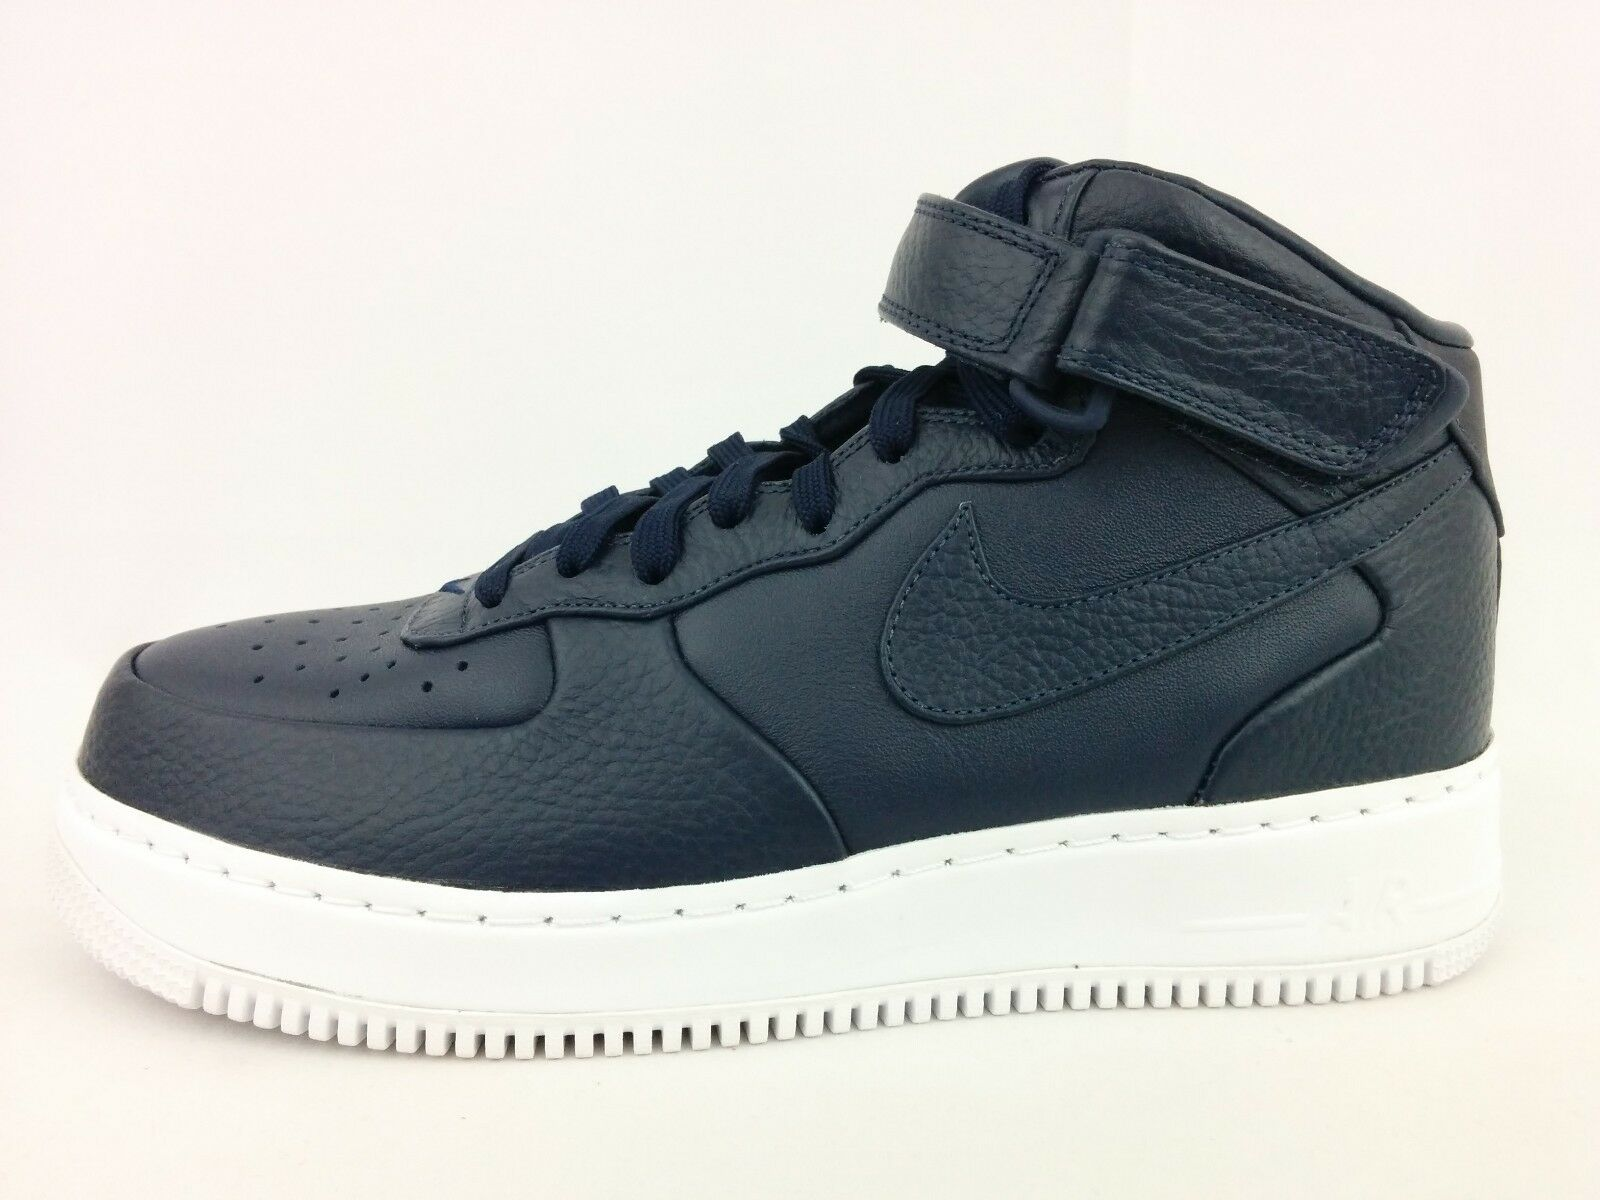 Brand New  Nike NikeLab Air Force 1 Mid Obsidian Blue Sneakers 819677-400 Comfortable